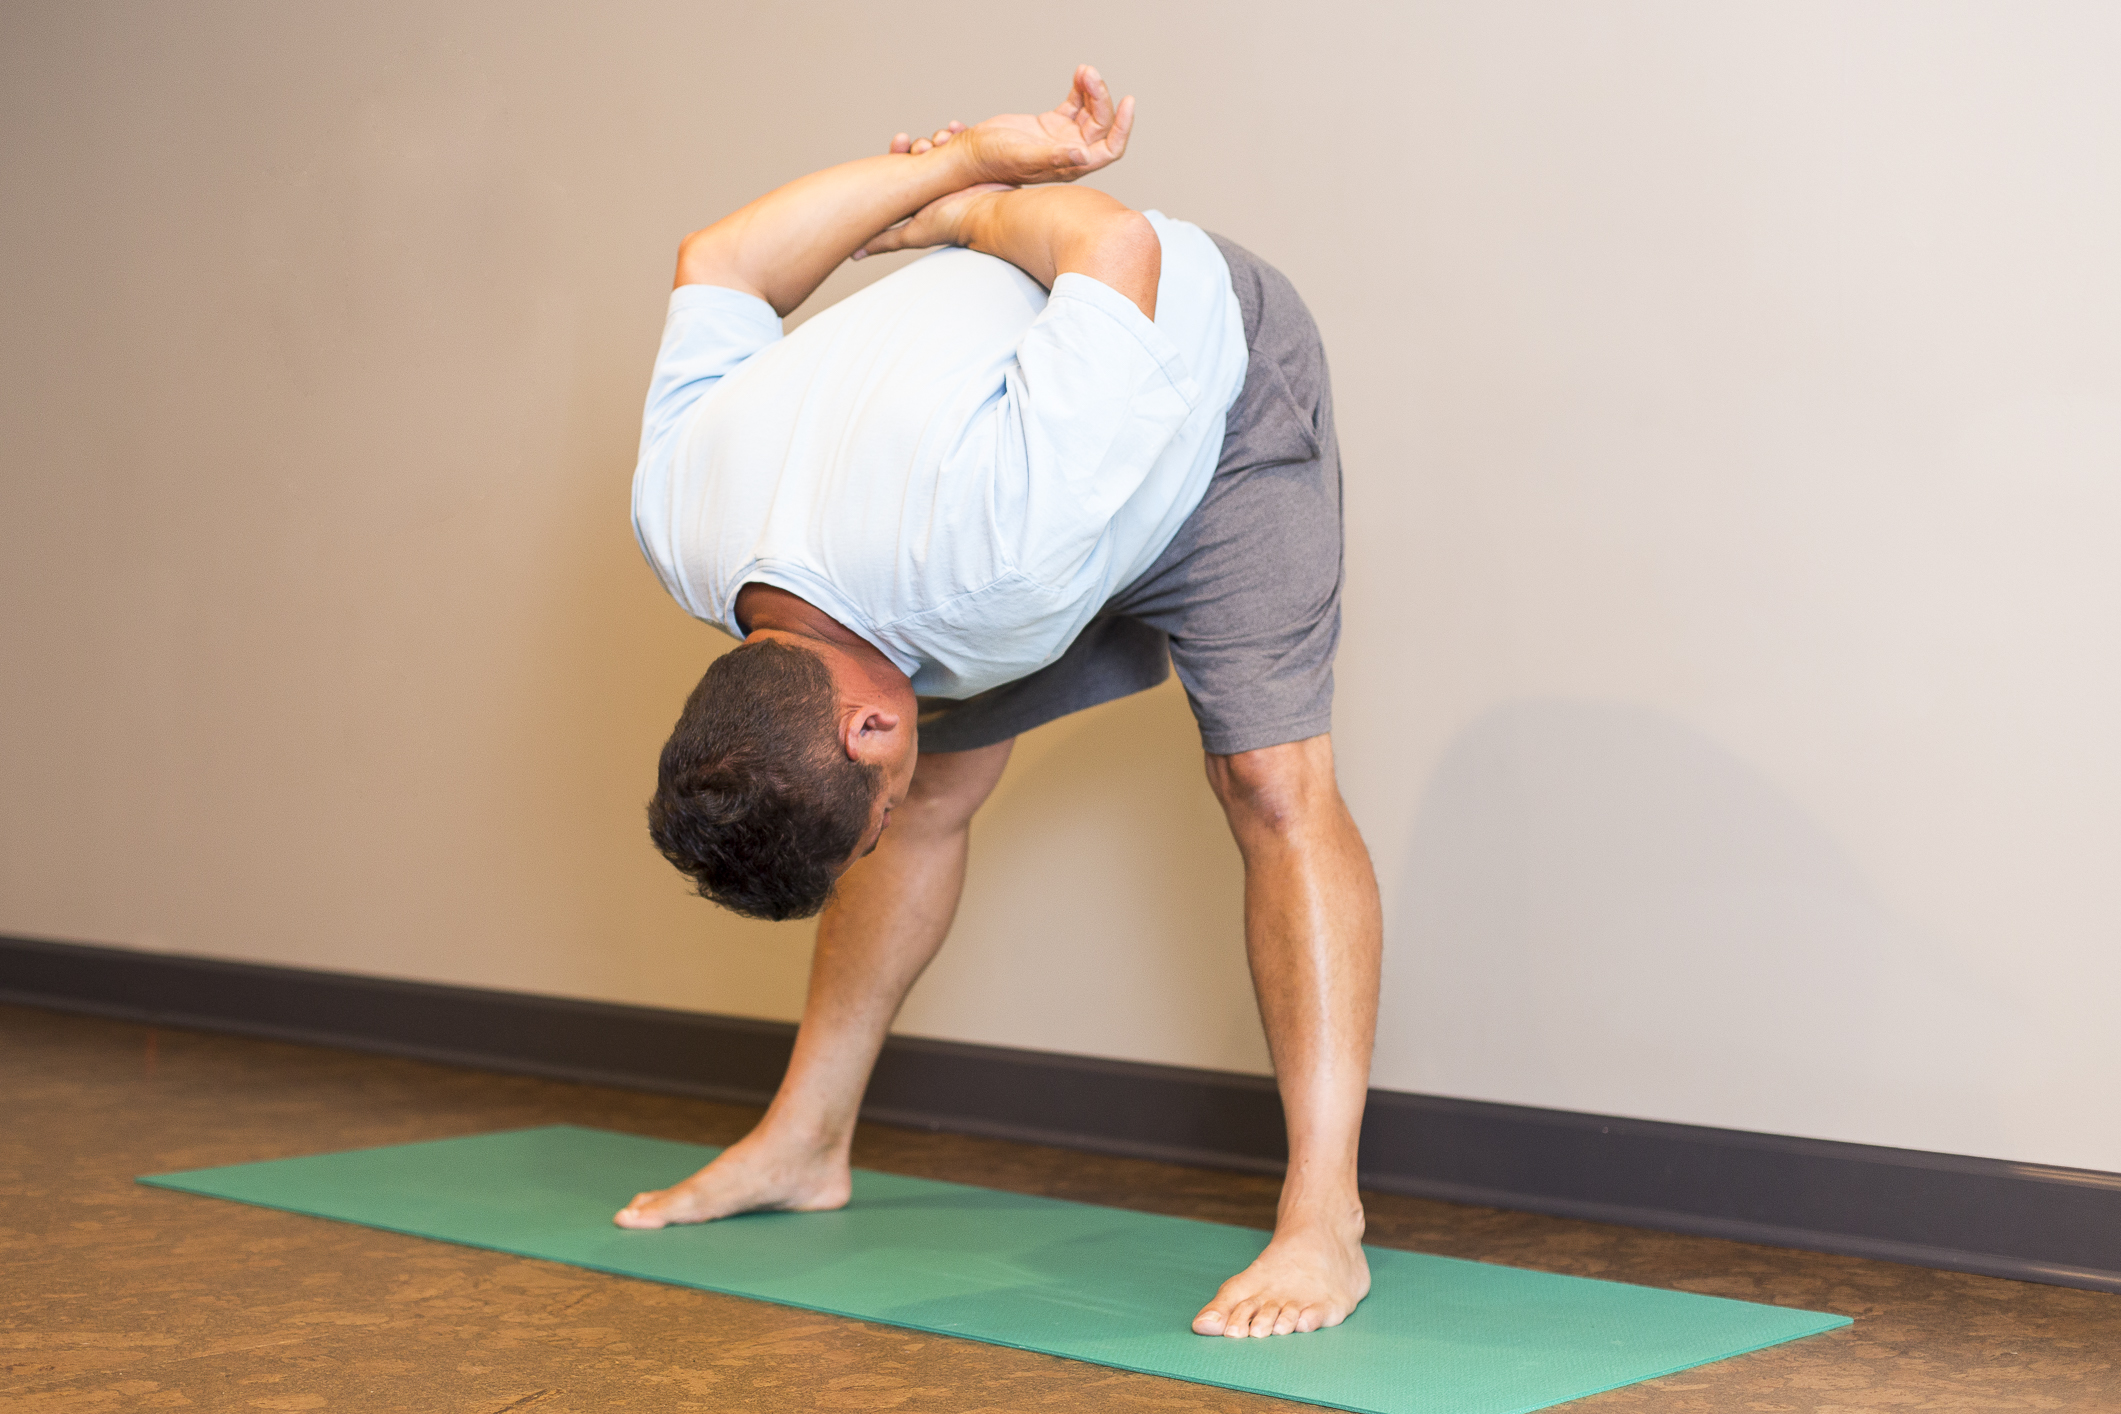 Yoga Poses For Arthritis Patients From Johns Hopkins Johns Hopkins Arthritis Center